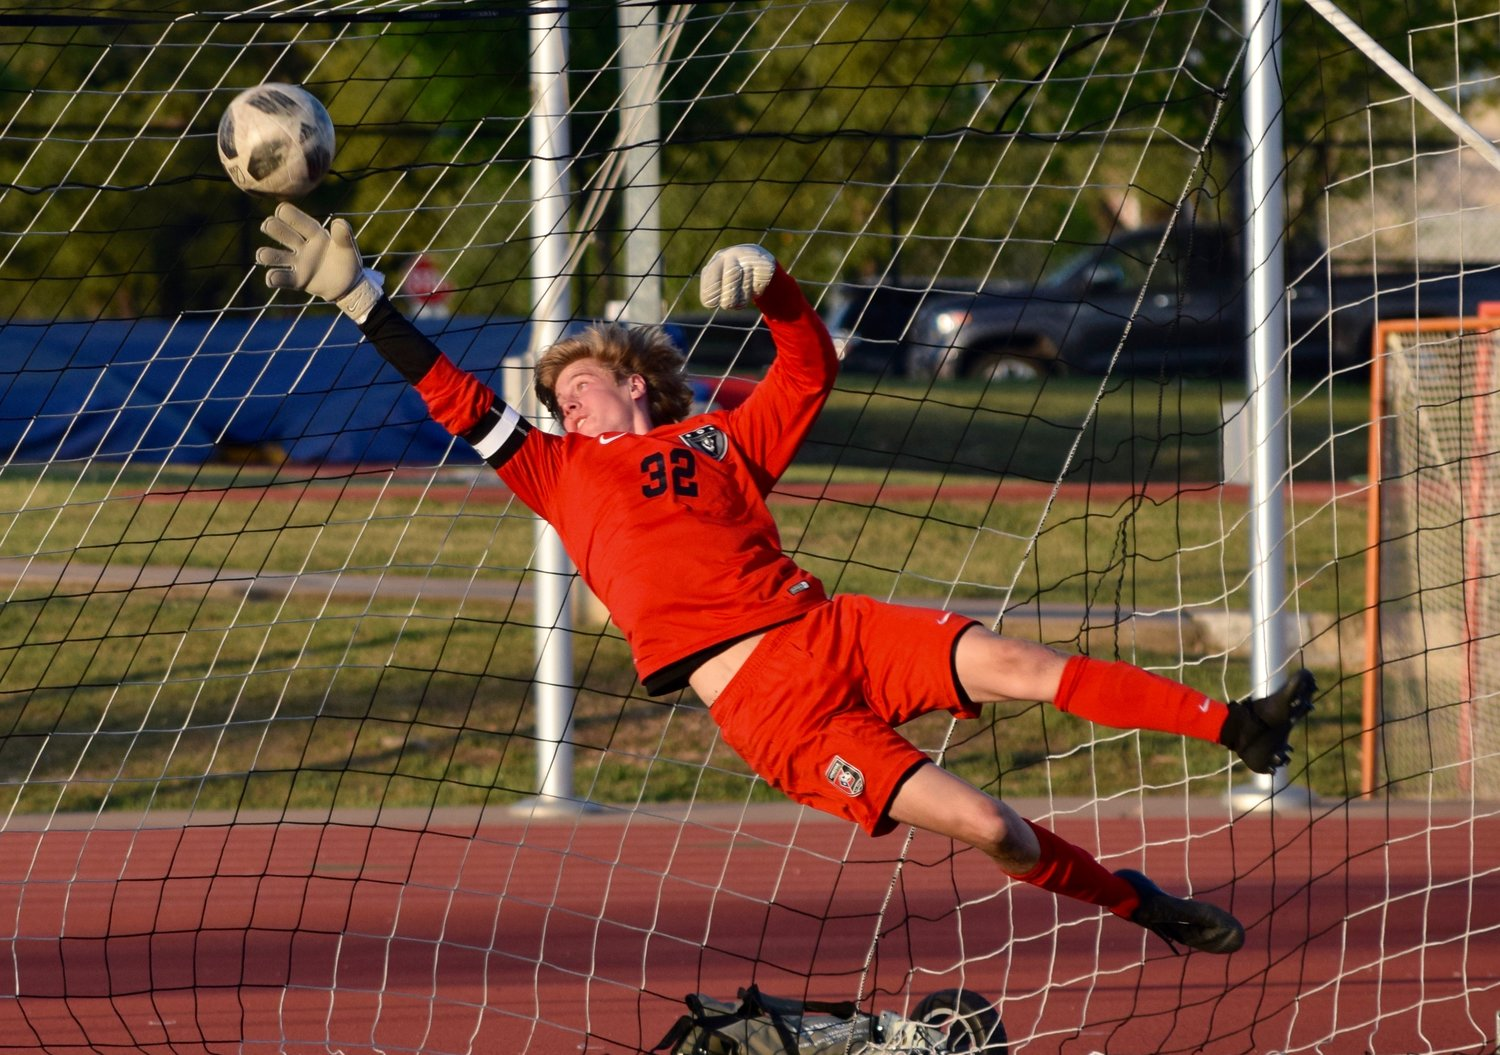 Connor Roth and Vandegrift lost to Cy Ranch 2-1 in the bi-district round of the playoffs on Friday night.